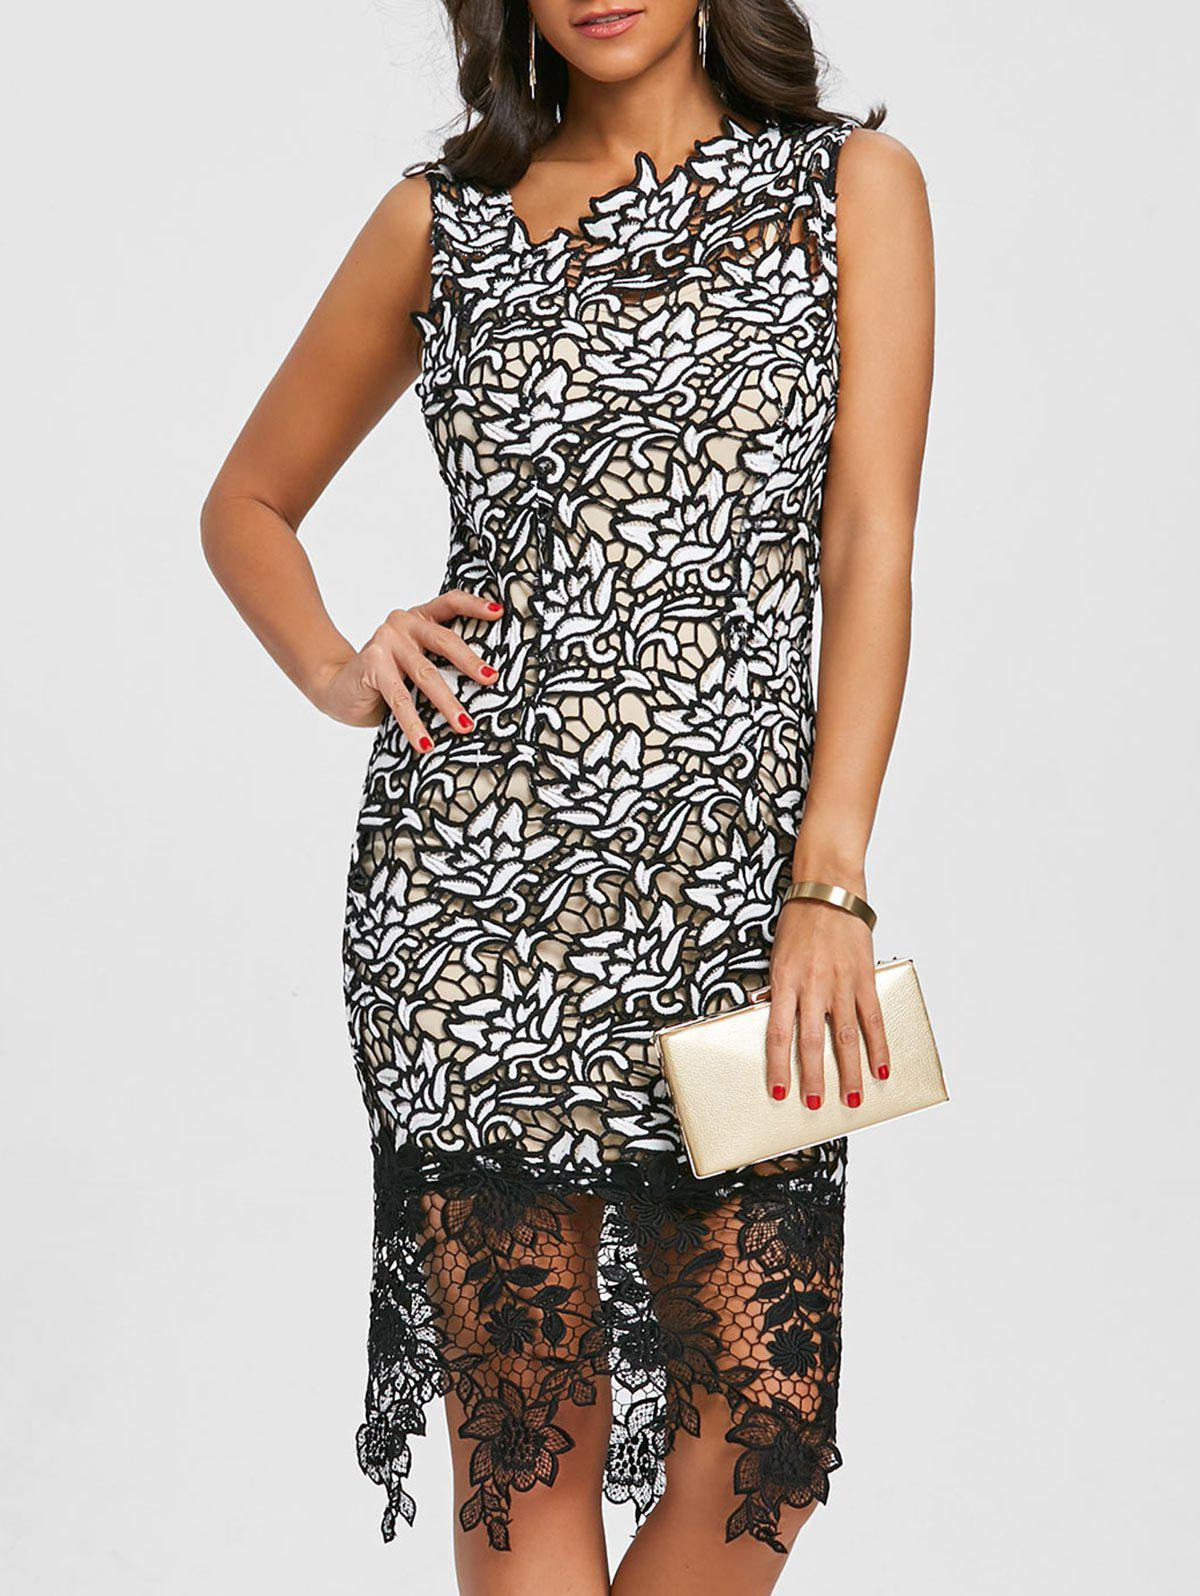 Affordable Skew Neck Lace Party Dress